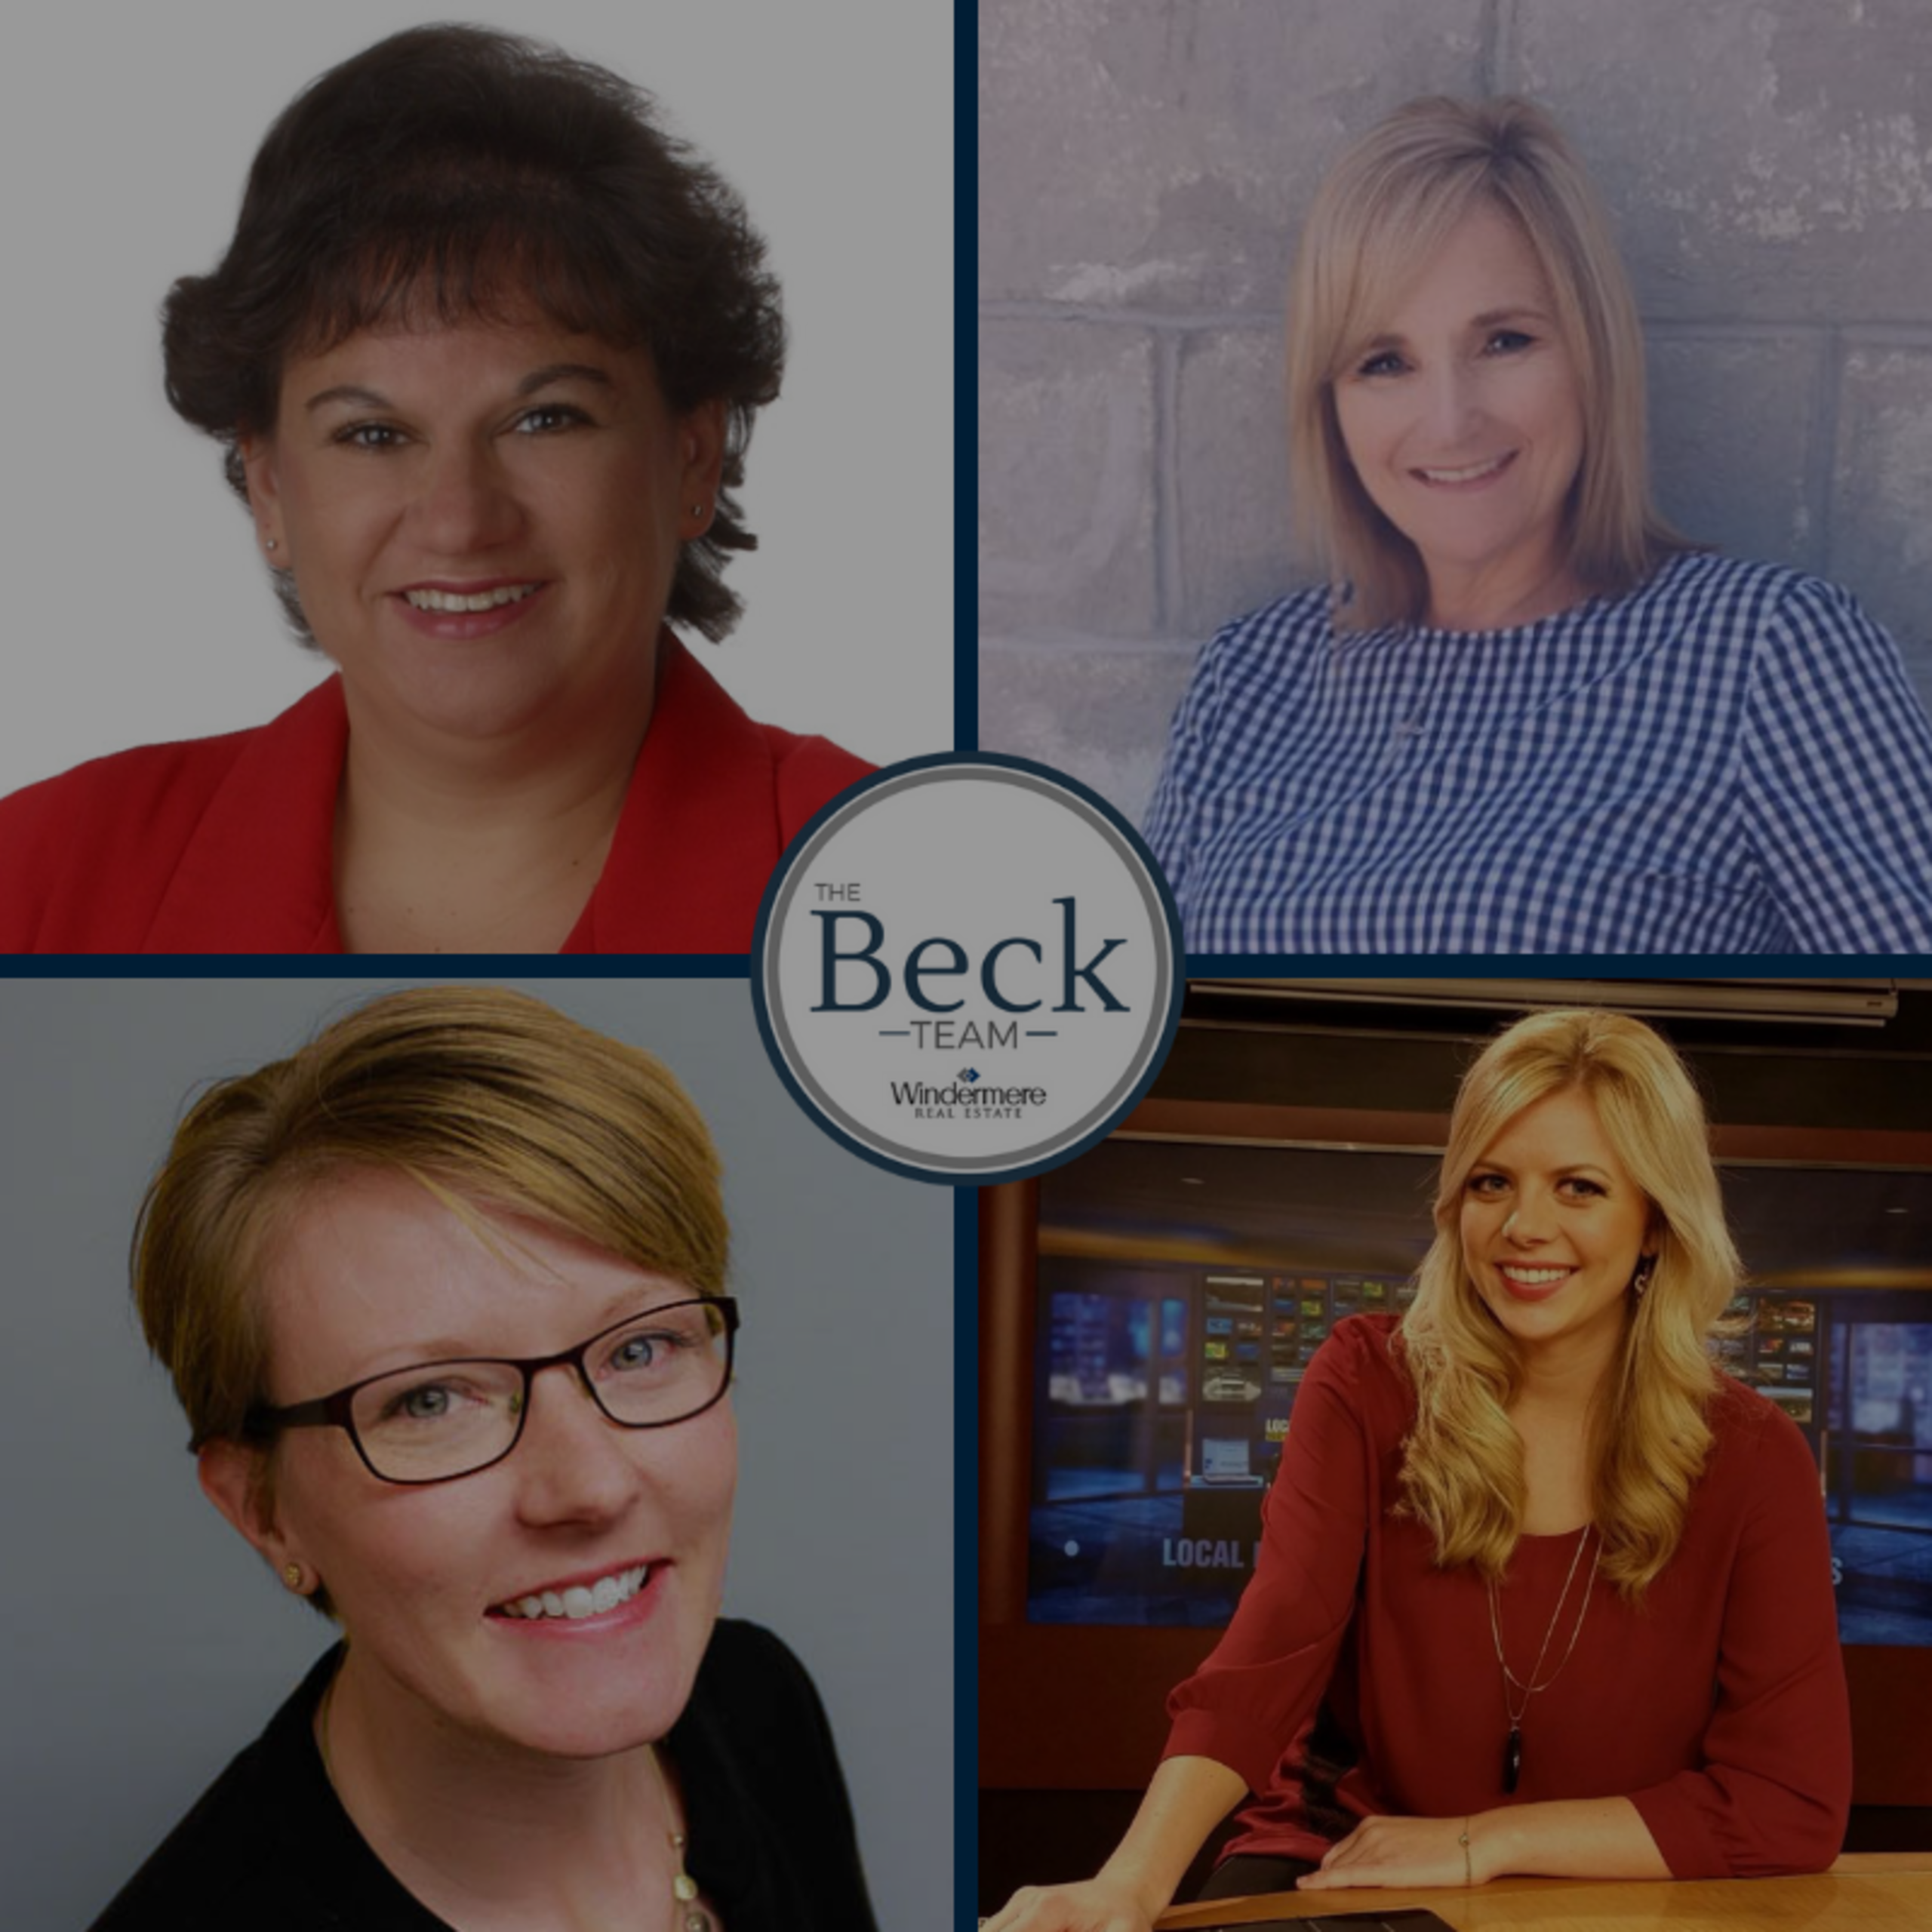 When it Comes to Real Estate, The Beck Team Has Your Back